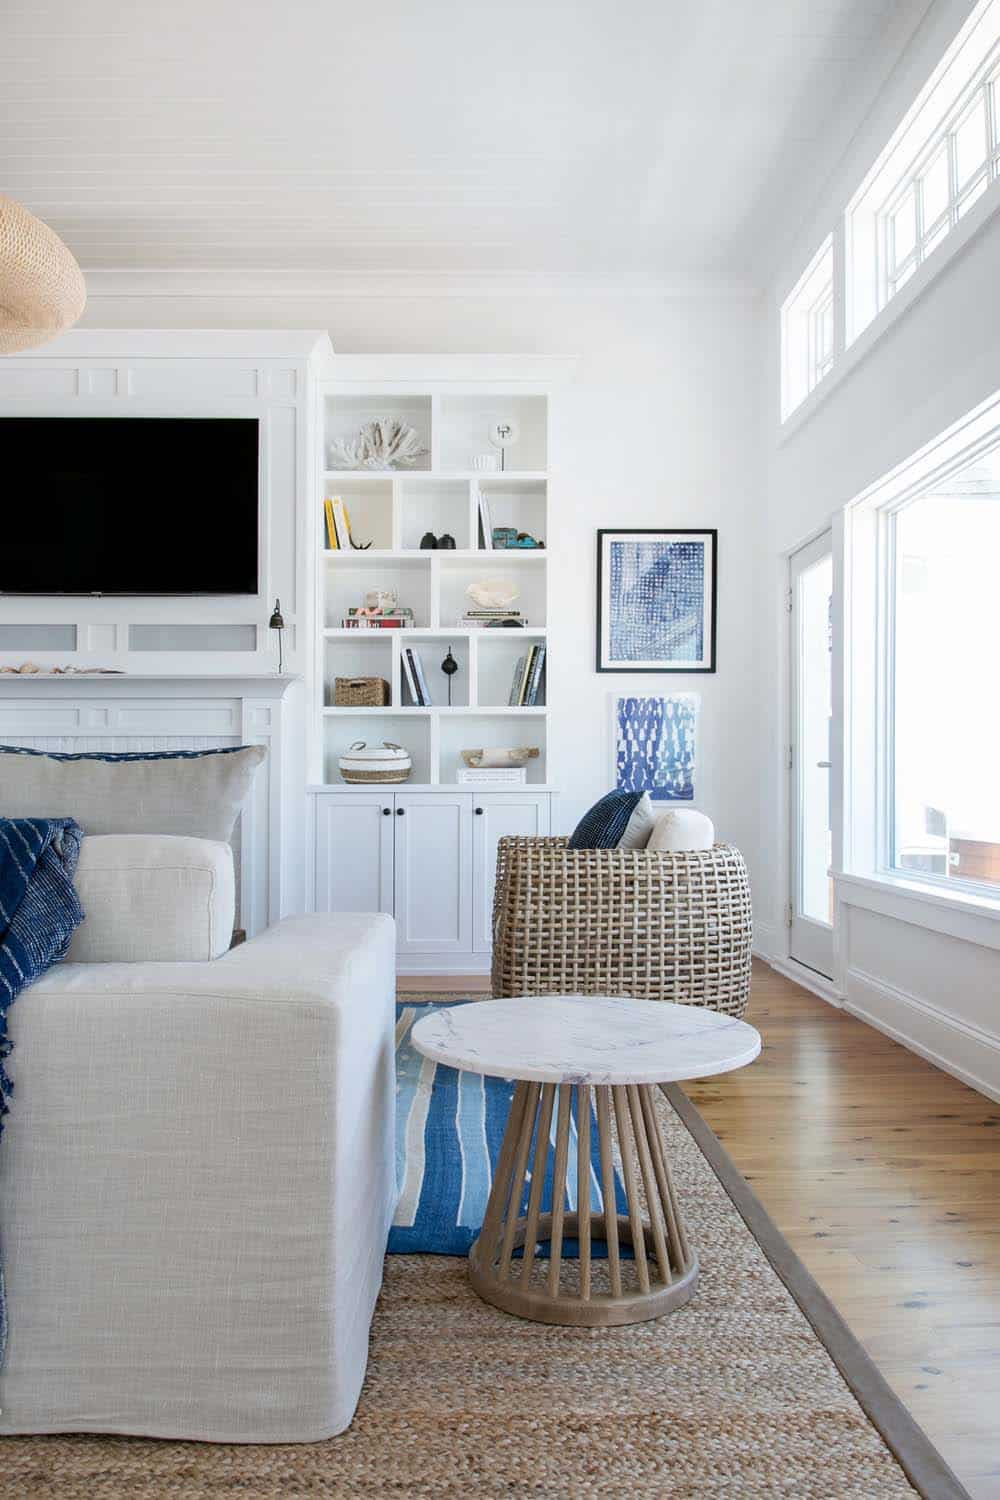 Coastal-Chic Beach Home-Chango Co-04-1 Kindesign